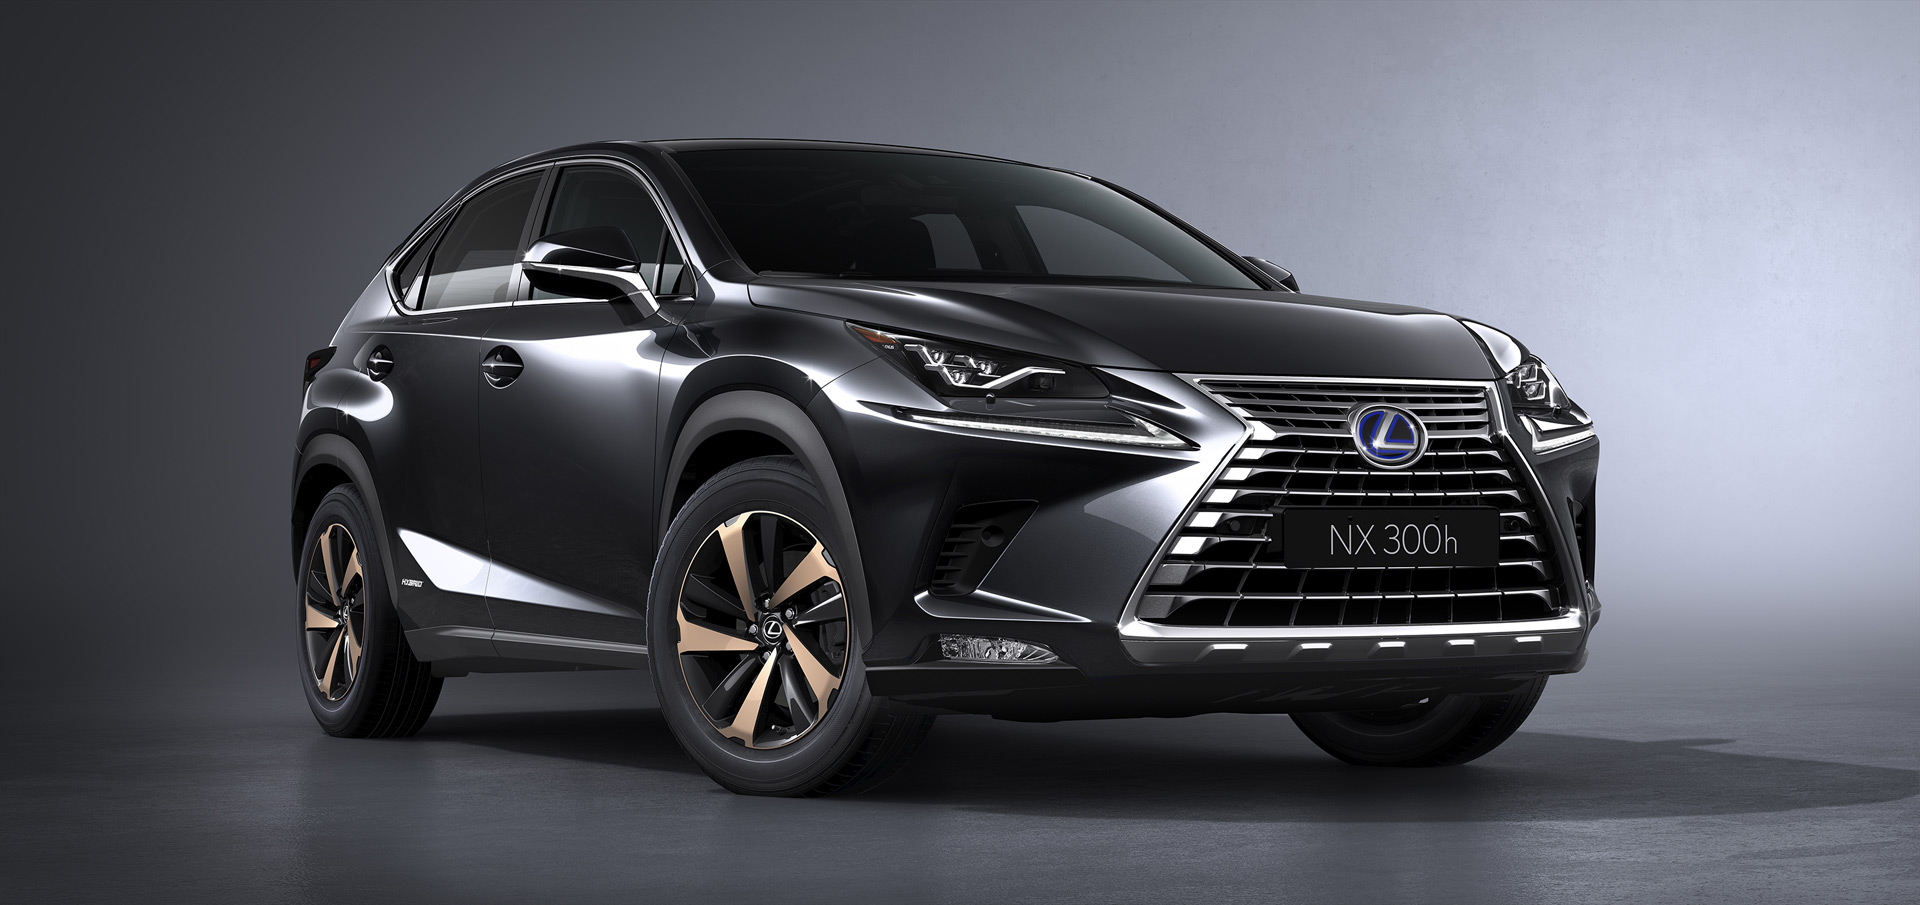 Lexus Nx Hybrid >> 2018 Lexus Nx Hybrid Gets More Safety Equipment At Lower Price